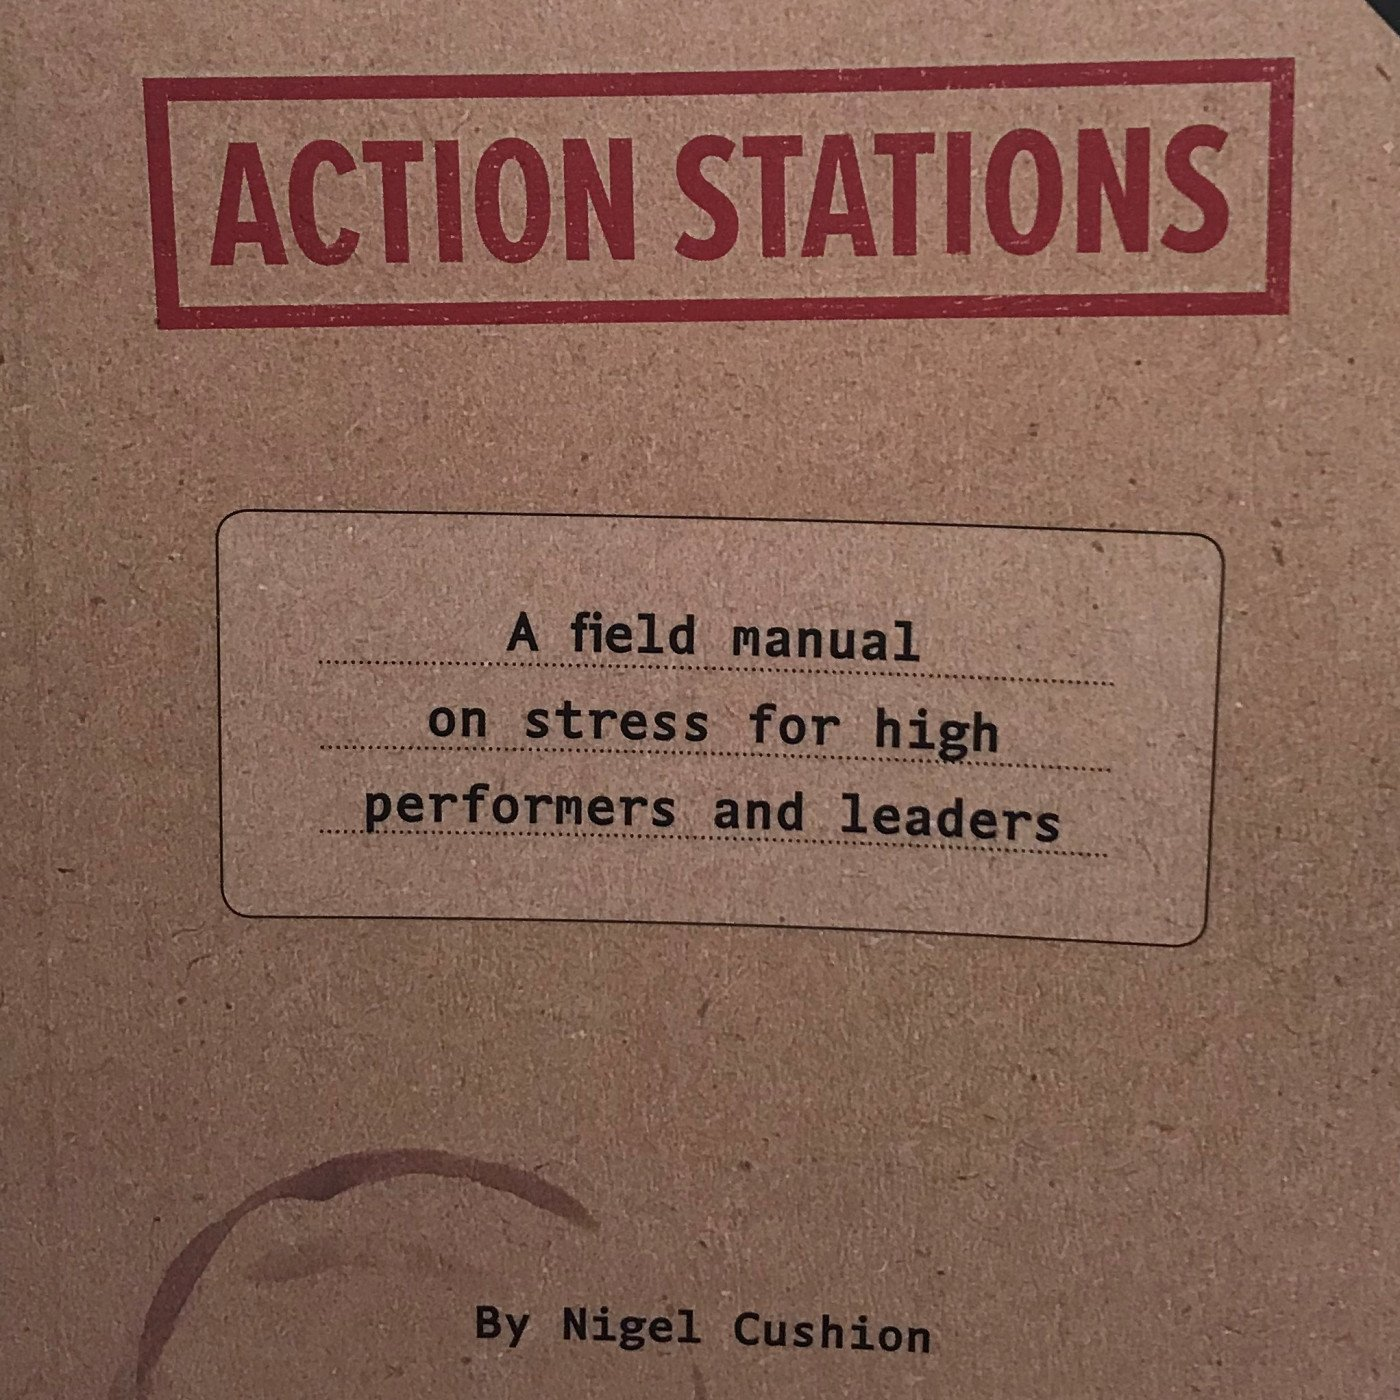 Action stations mental health